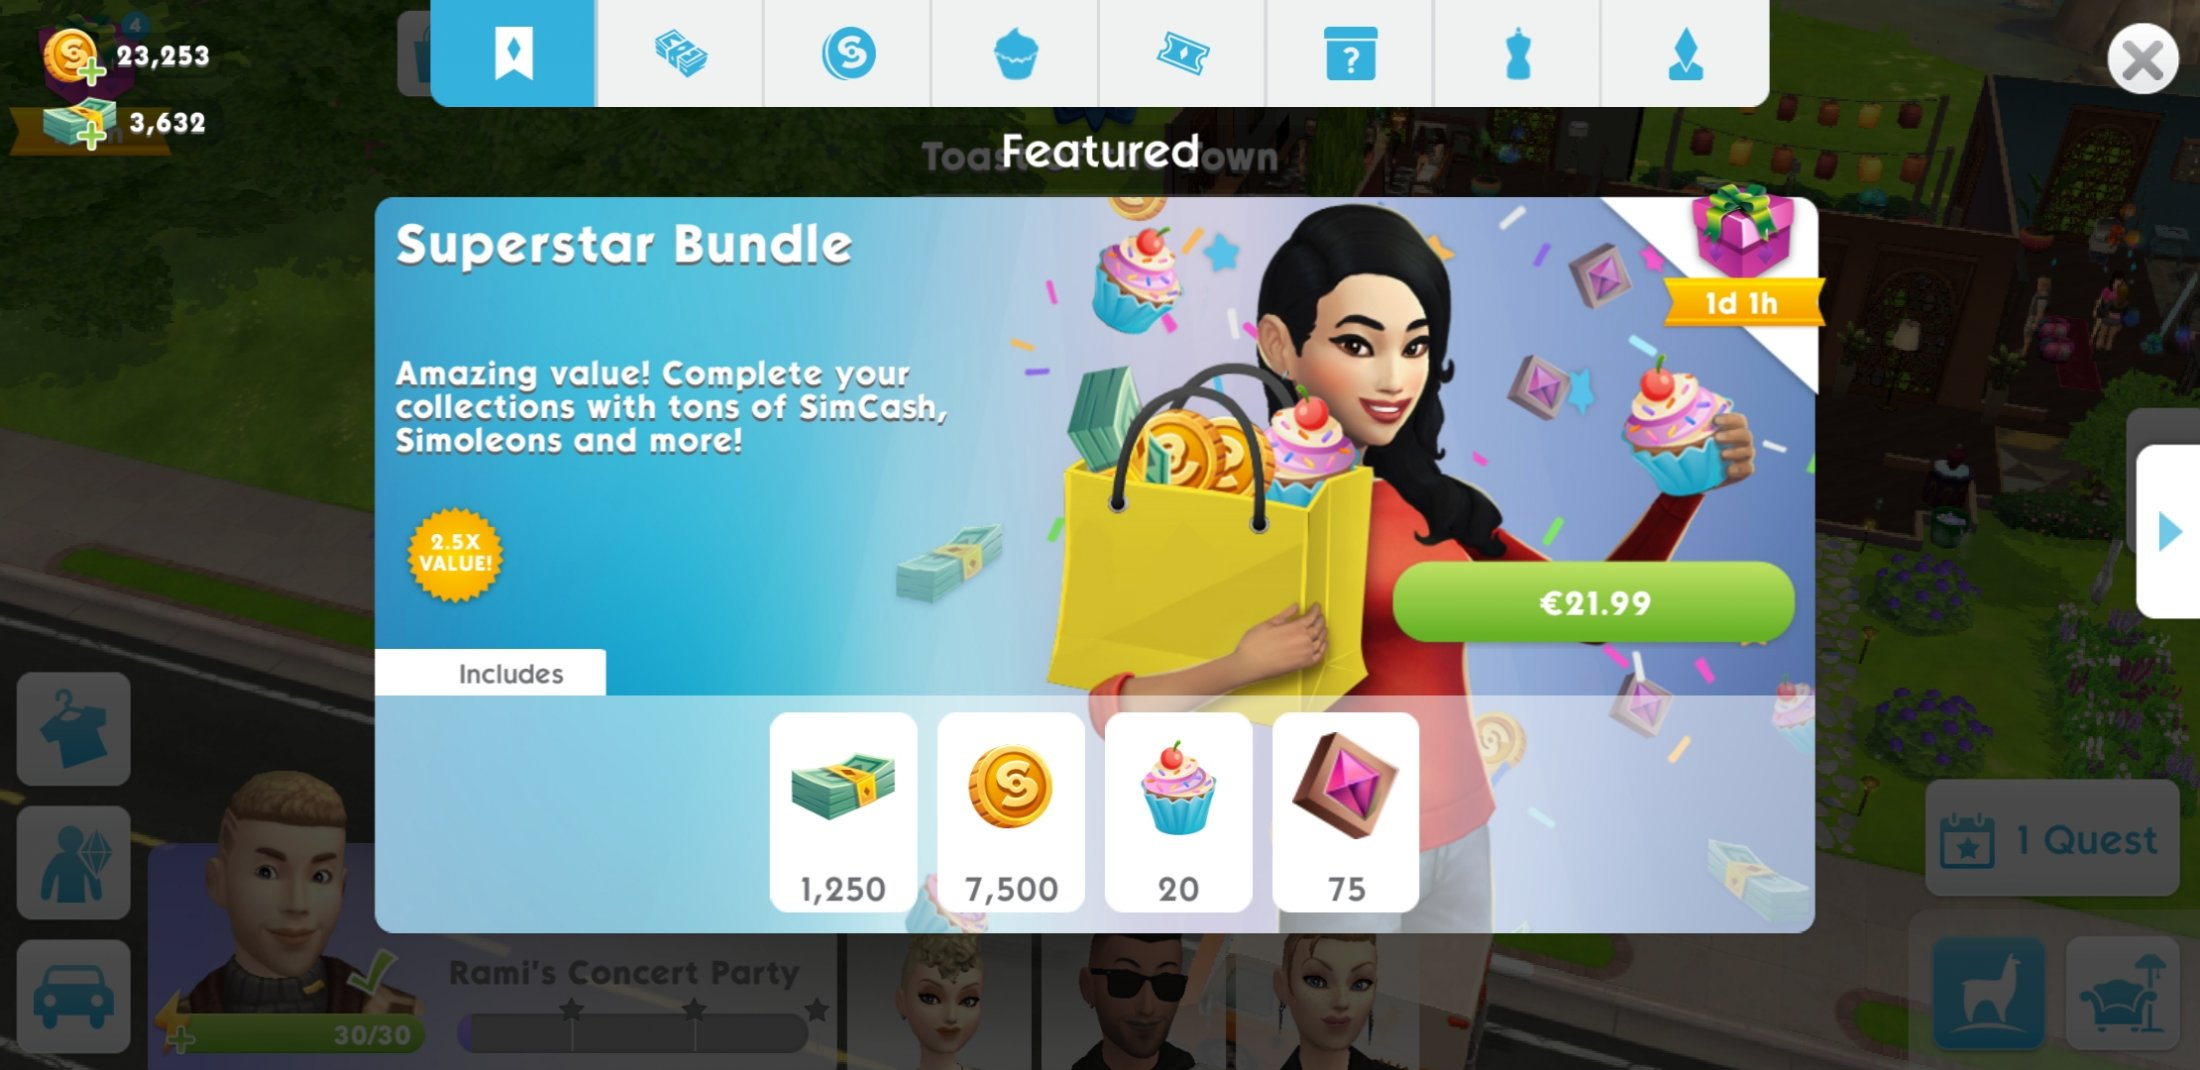 Superstar Bundle